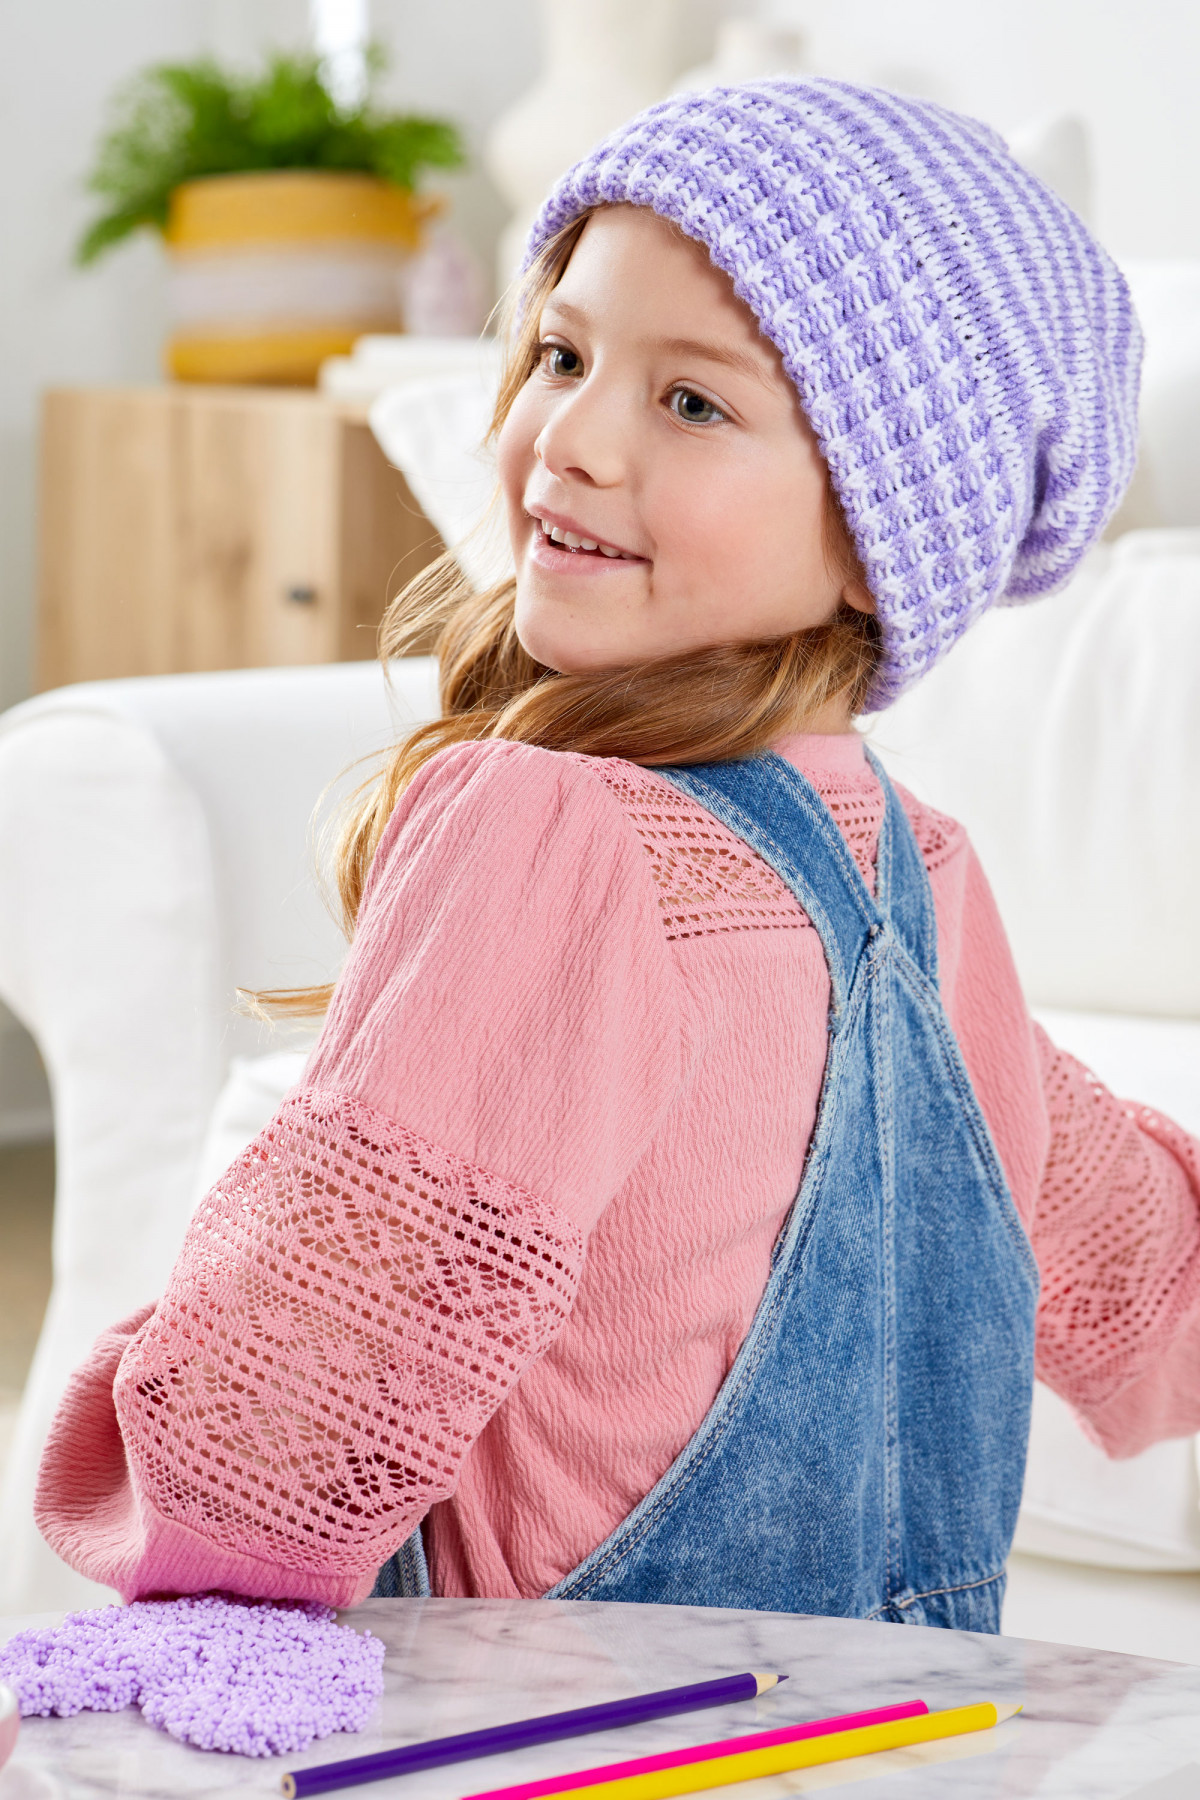 Lifestyle product photography of young girl wearing a hand knit purple cap